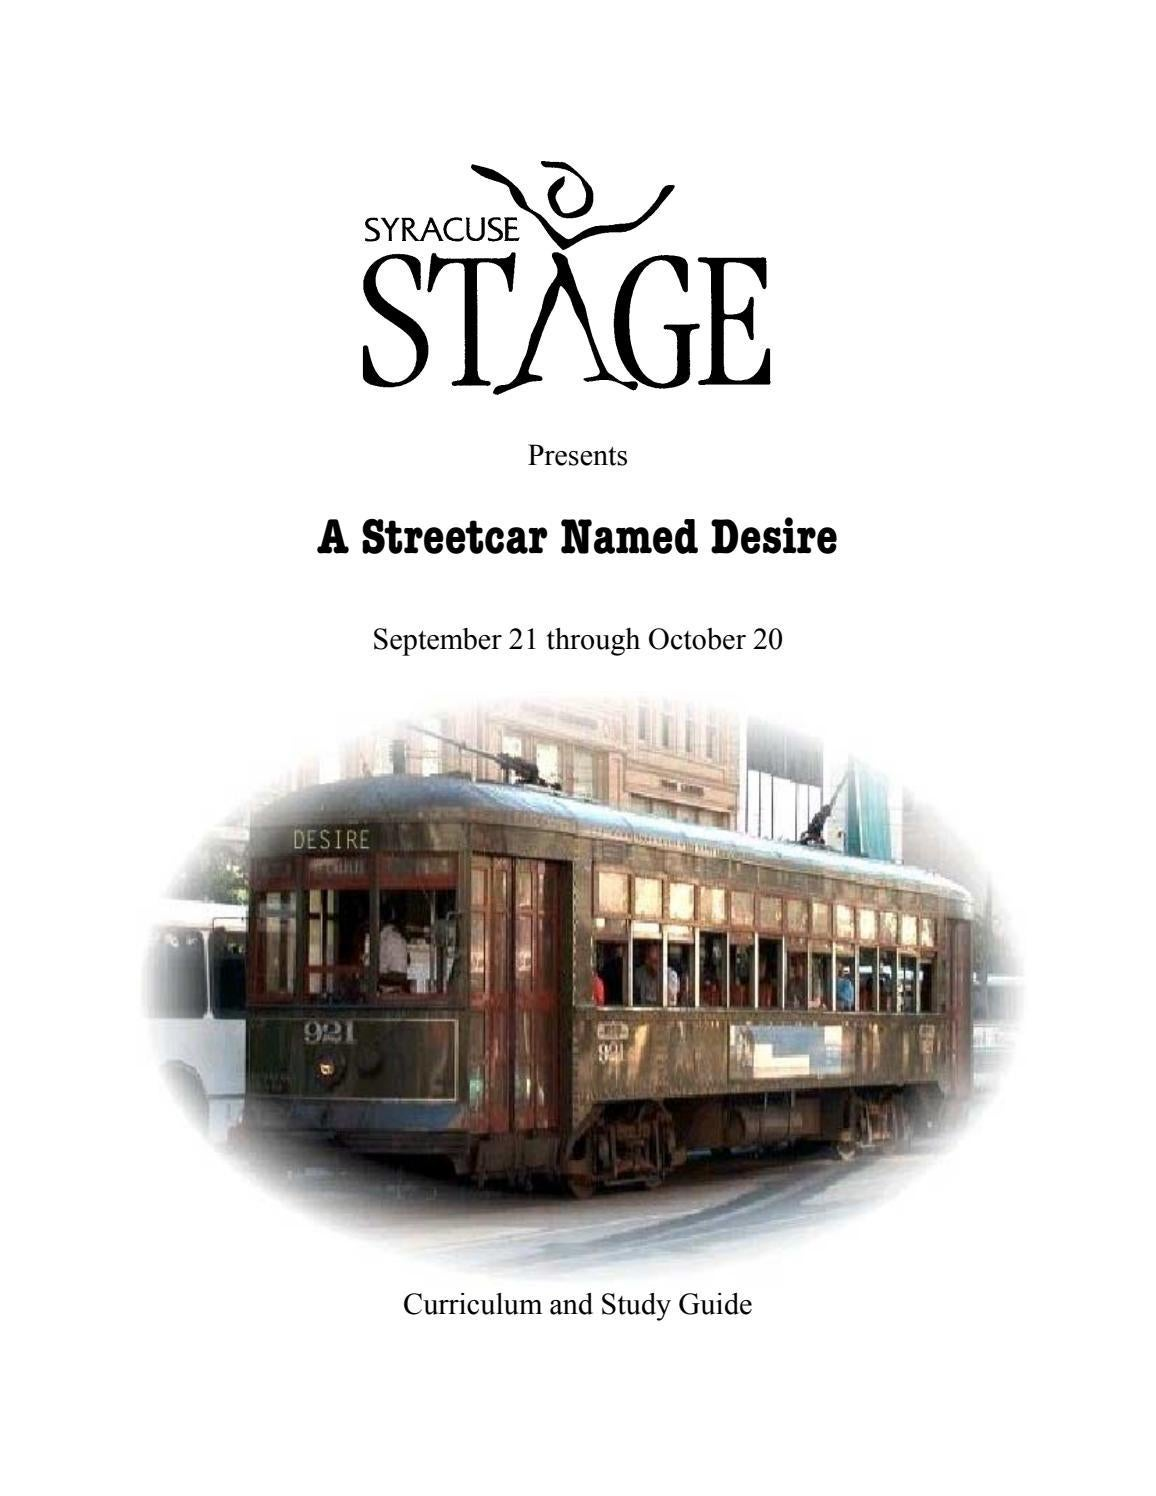 A streetcar named desire by syracuse stage issuu buycottarizona